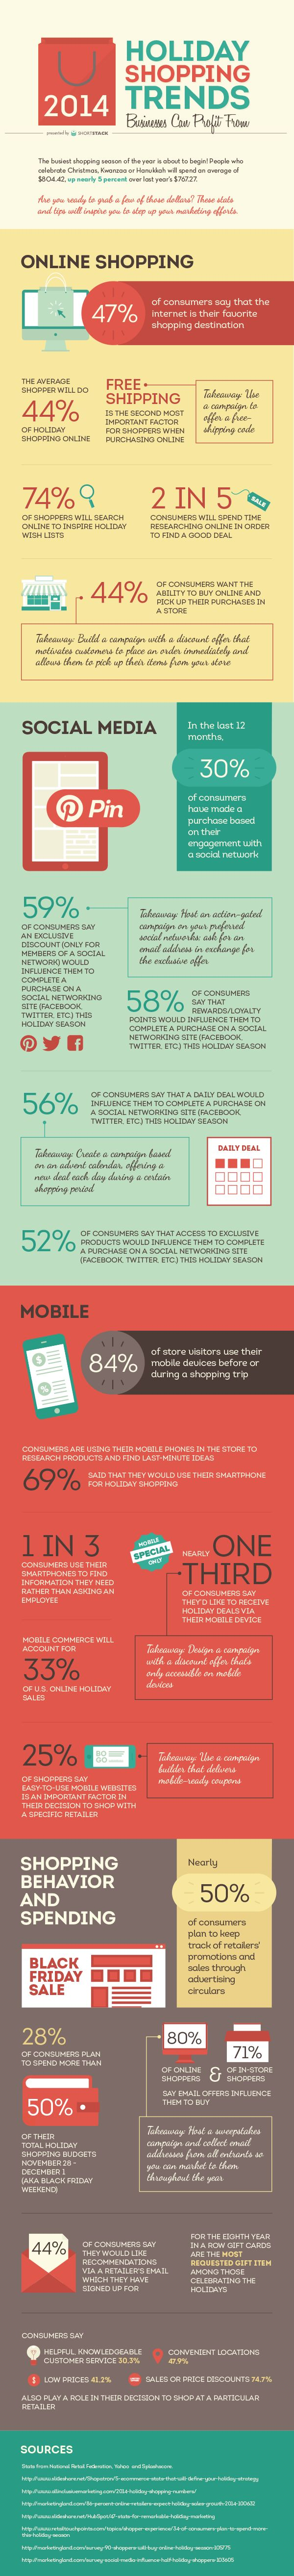 infographic holiday marketing ideas